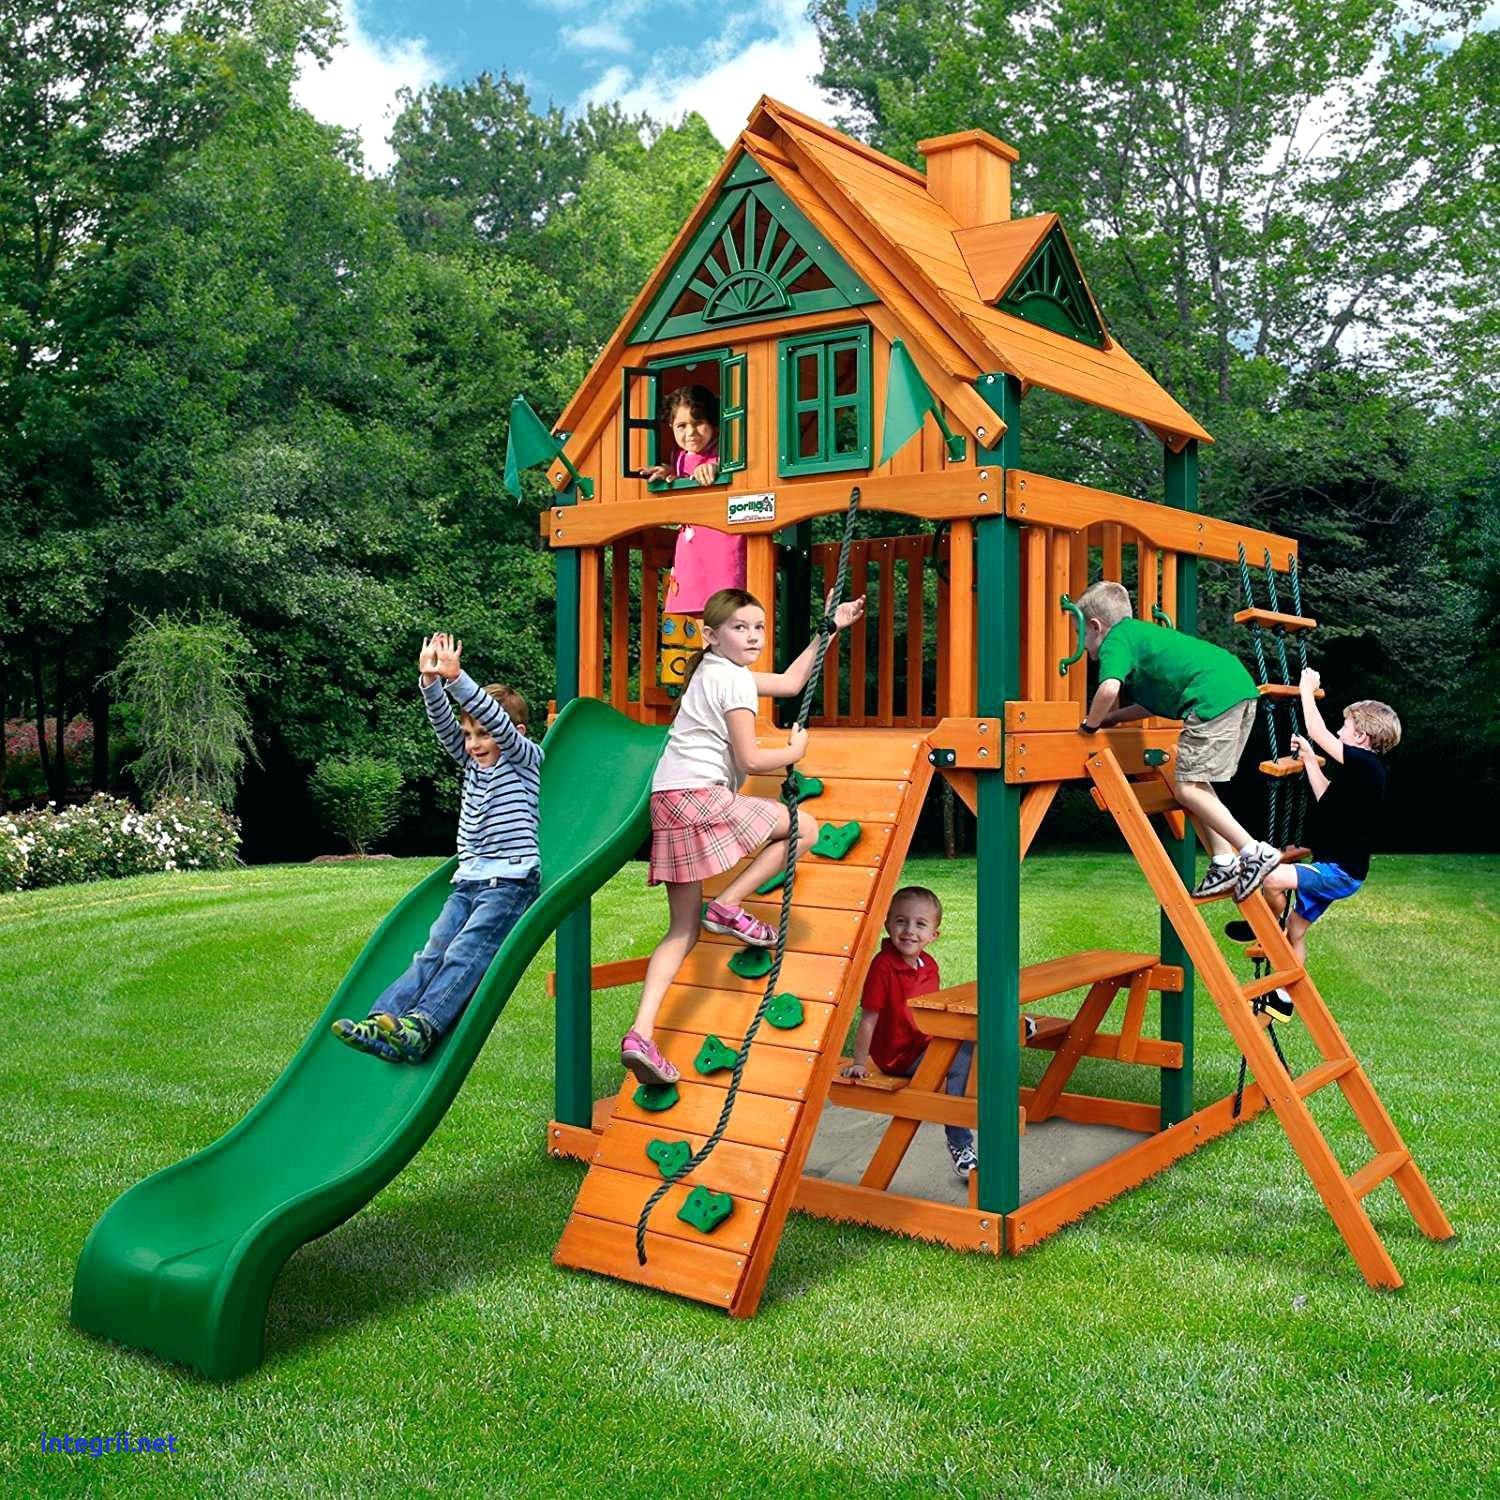 Small Backyard Playground Ideas For Kids With Pictures with Small Backyard Playground Ideas